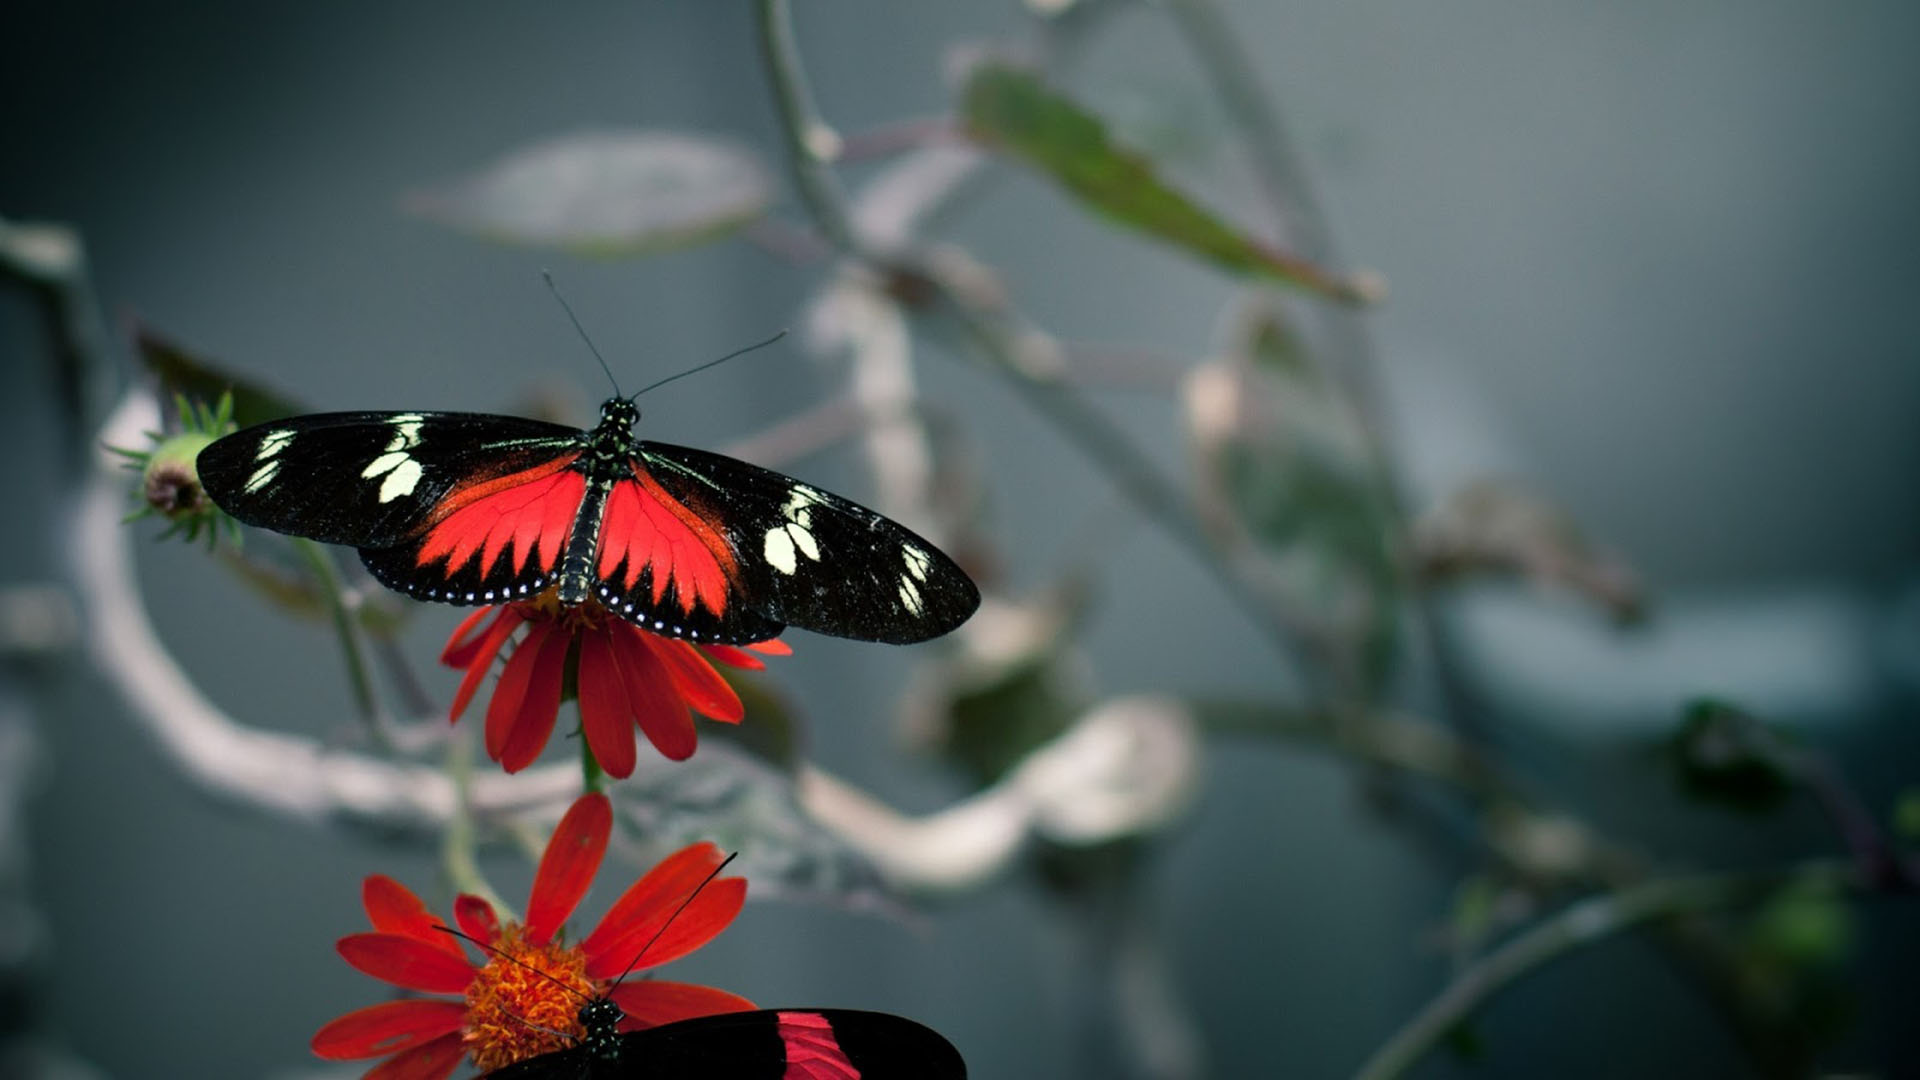 red butterfly wallpapers - photo #19